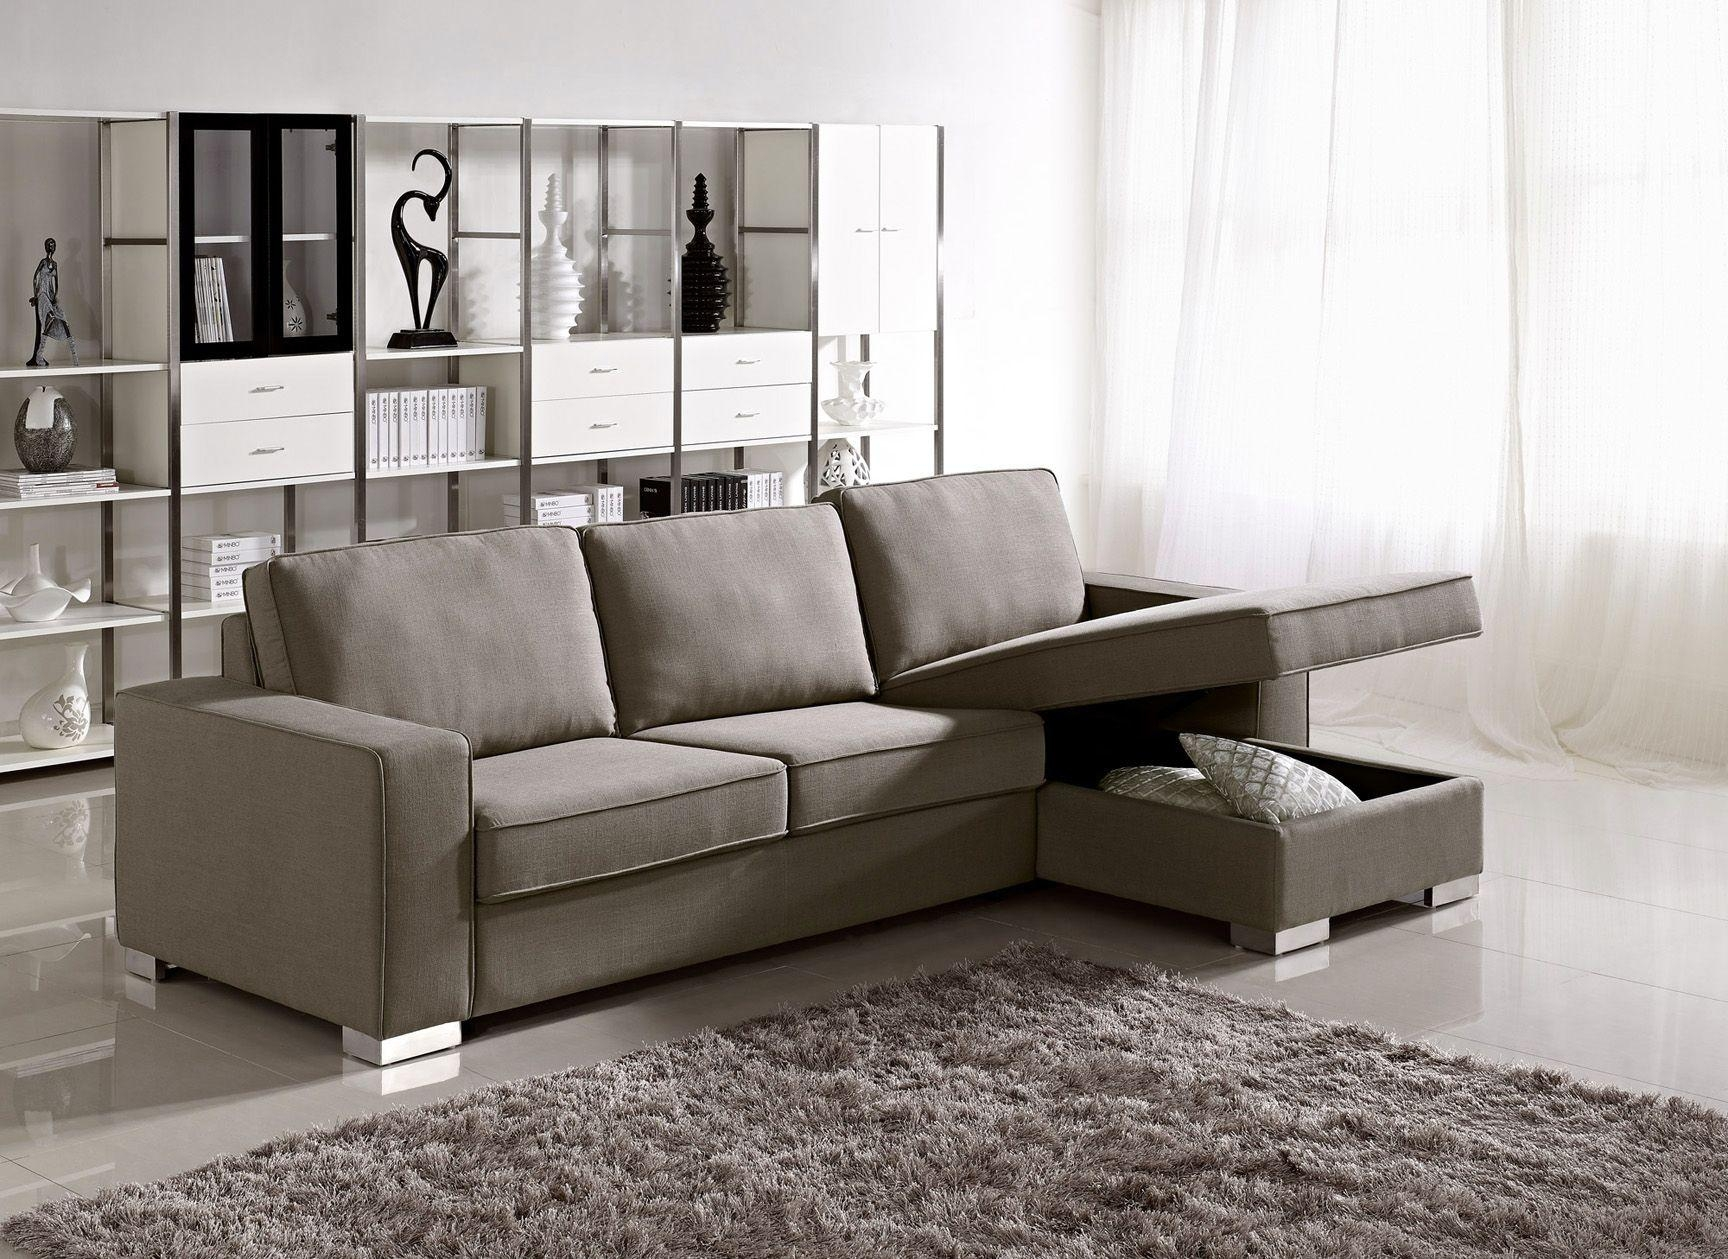 Sectional Sofa Houston And Sectional Sofas 4 Image 4 Of 23 | Auto Regarding Houston Sectional Sofa (Image 6 of 20)